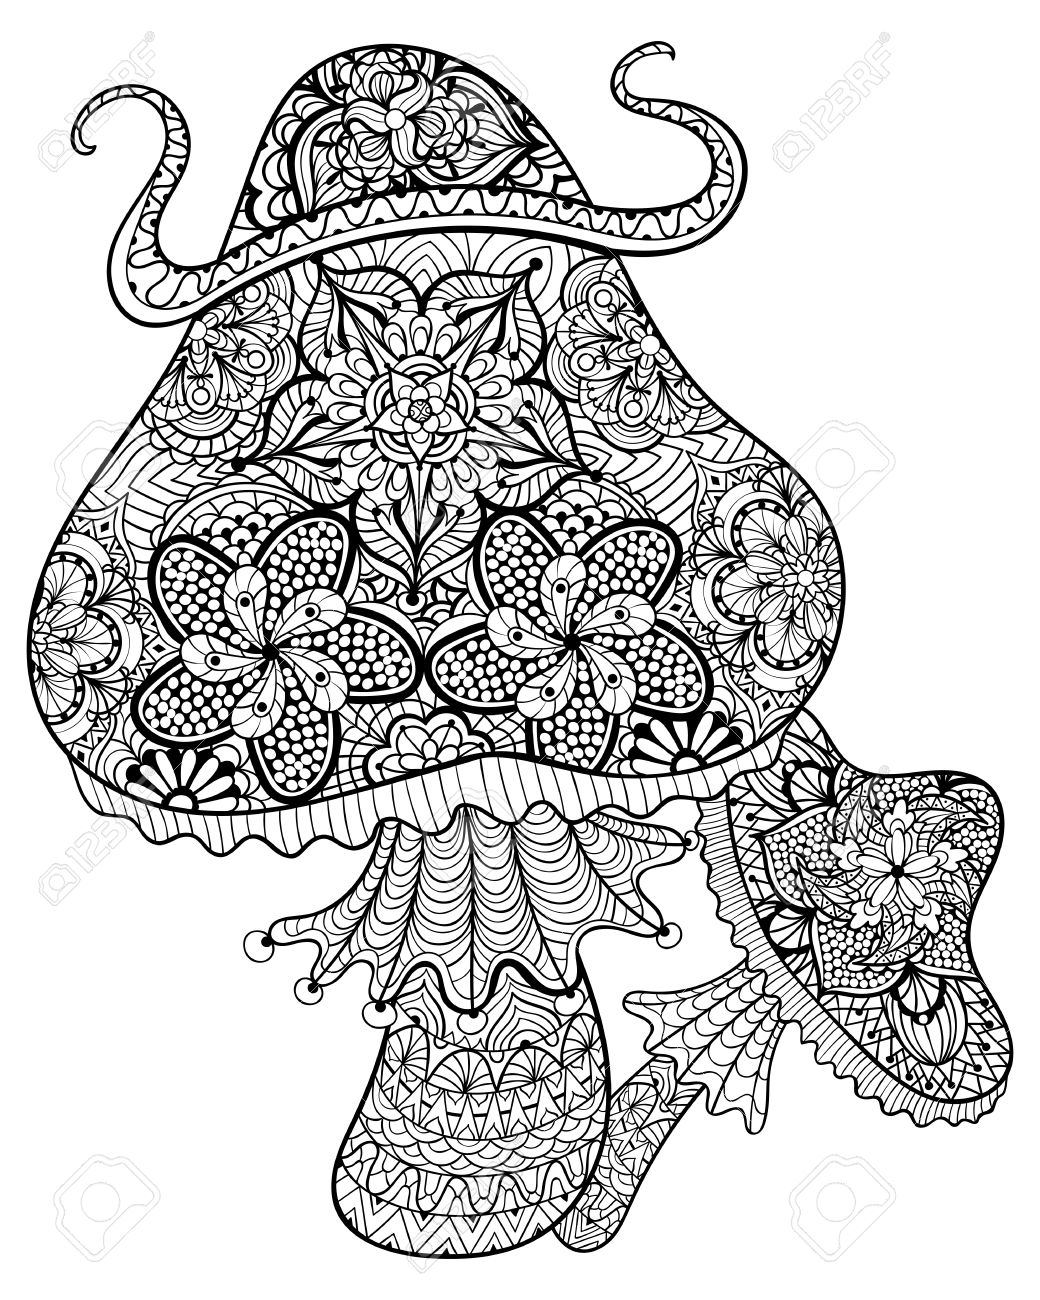 1040x1300 Hand Drawn Magic Mushrooms For Adult Anti Stress Coloring Page